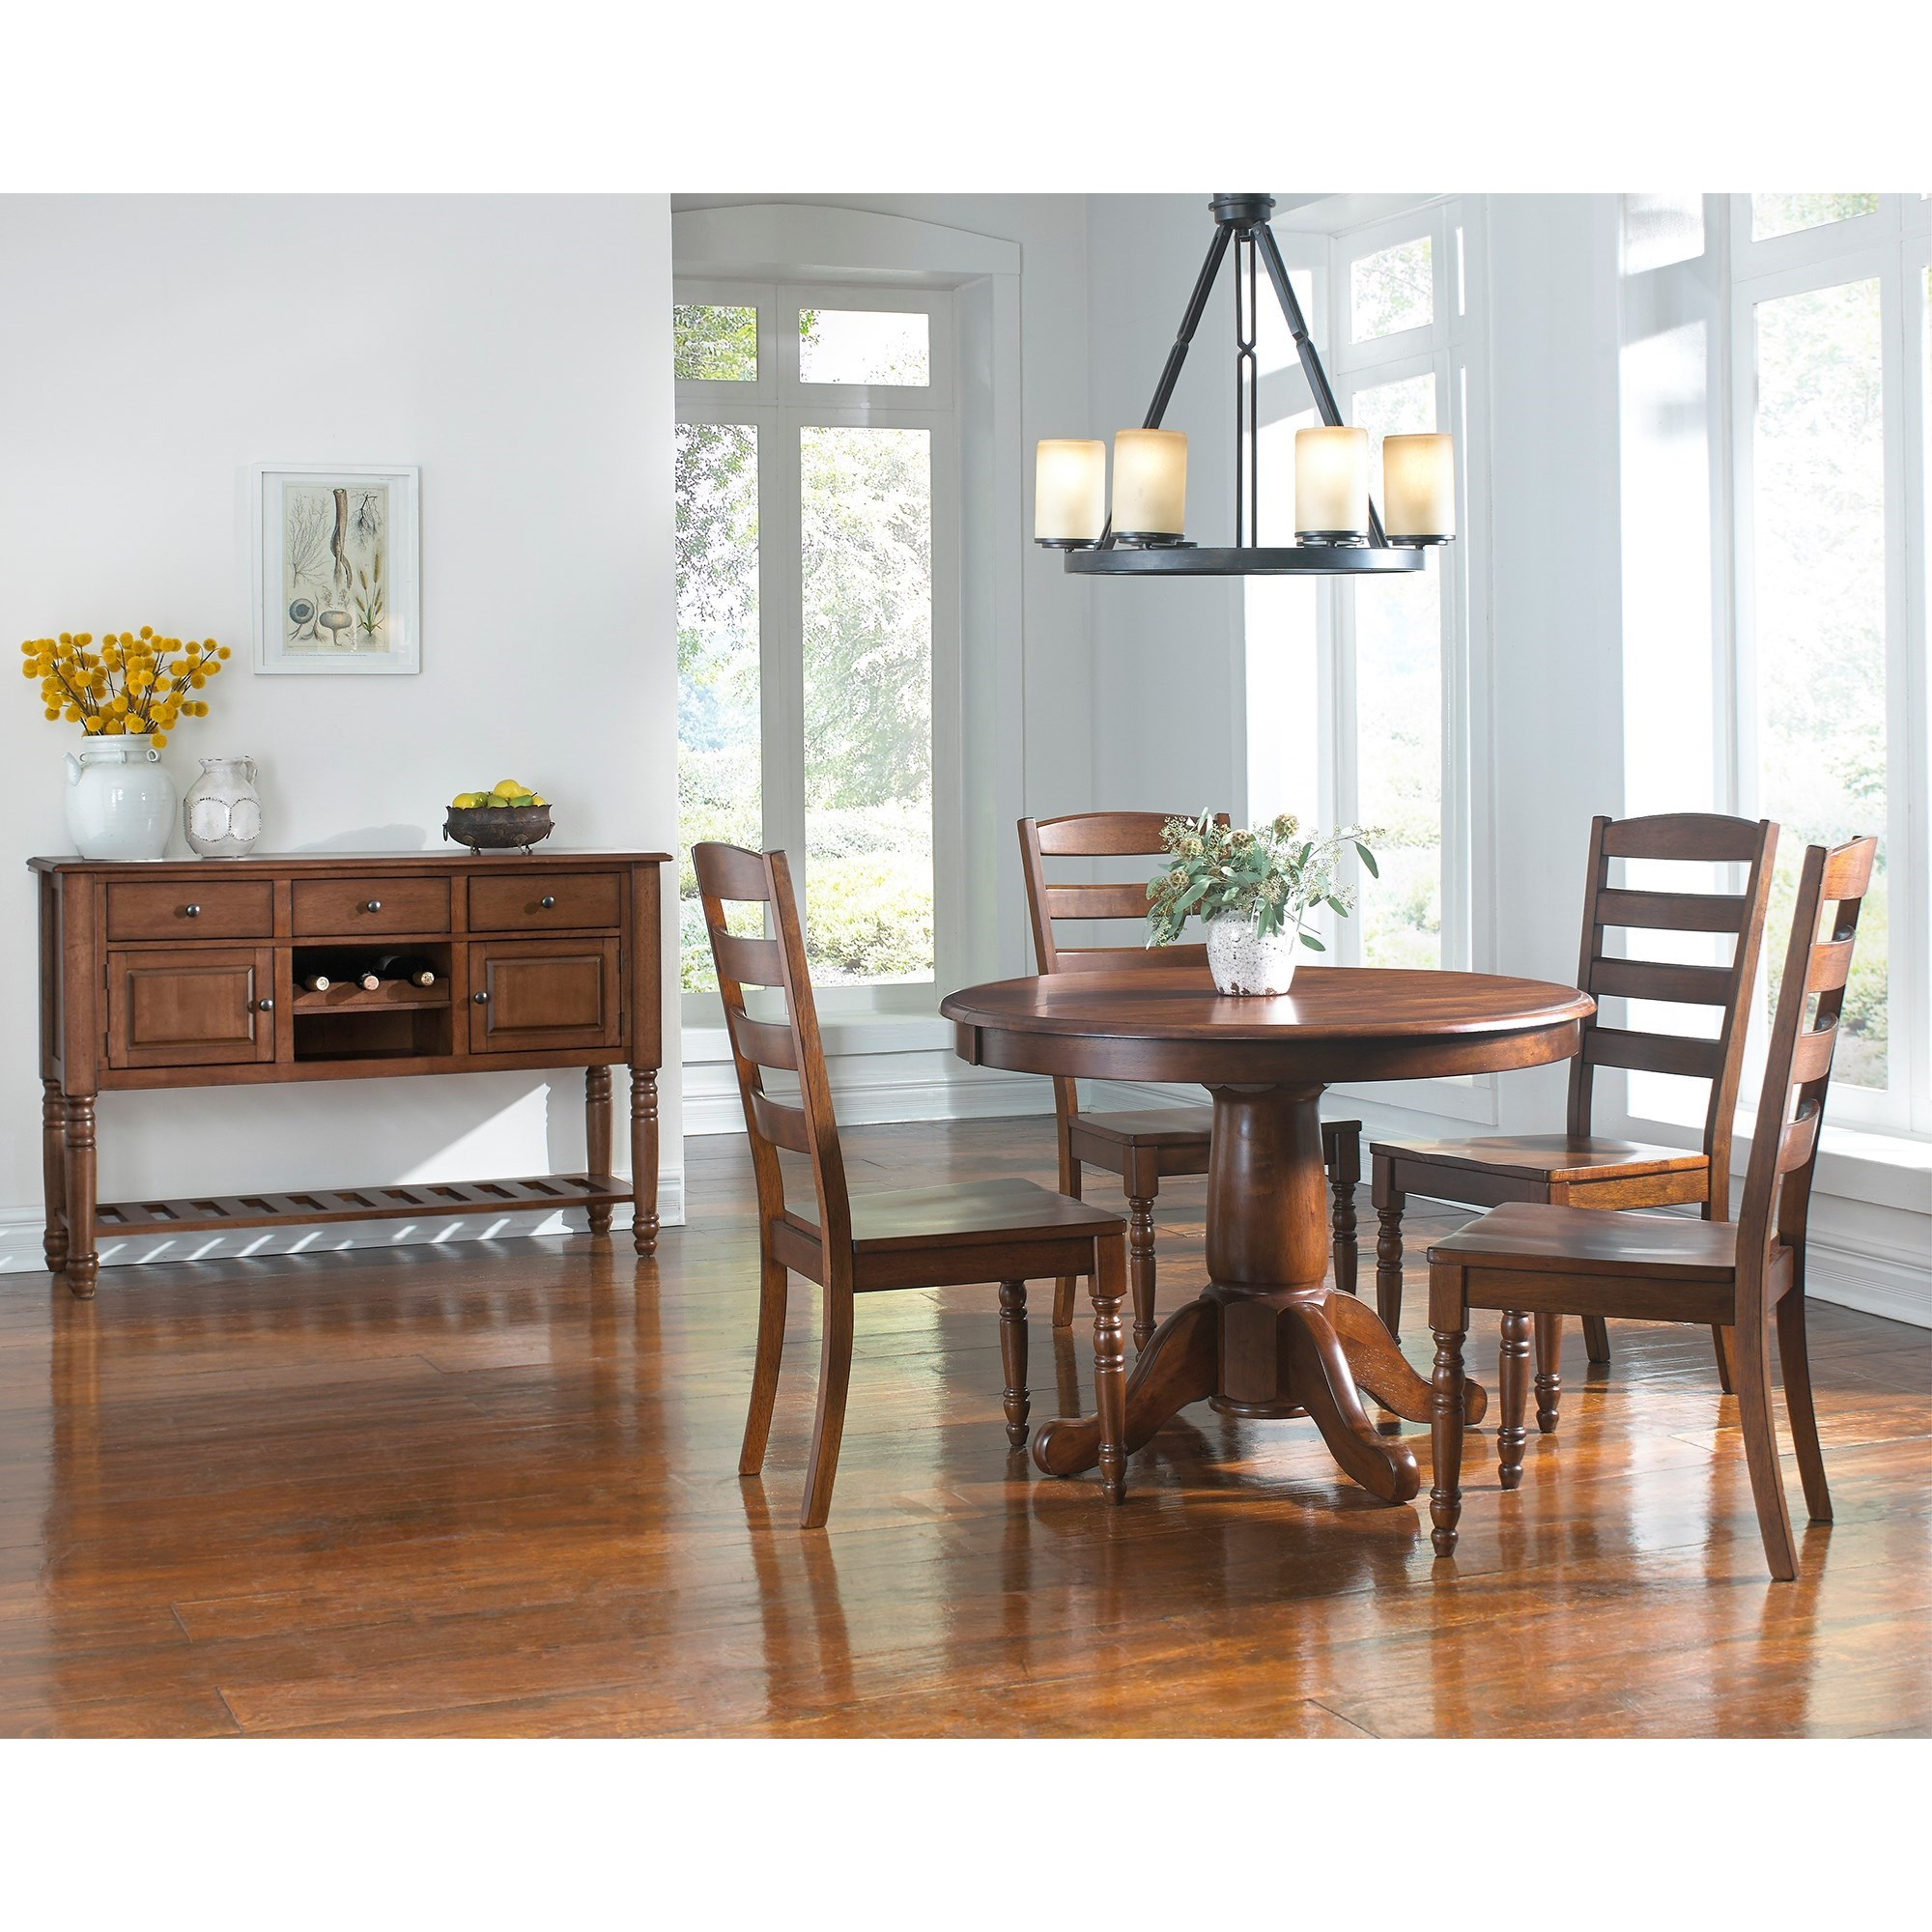 Oval Extension Pedestal TableOval Single Pedestal Dining Table with Extension Leaf by AAmerica  . Oval Pedestal Dining Table With Extension. Home Design Ideas